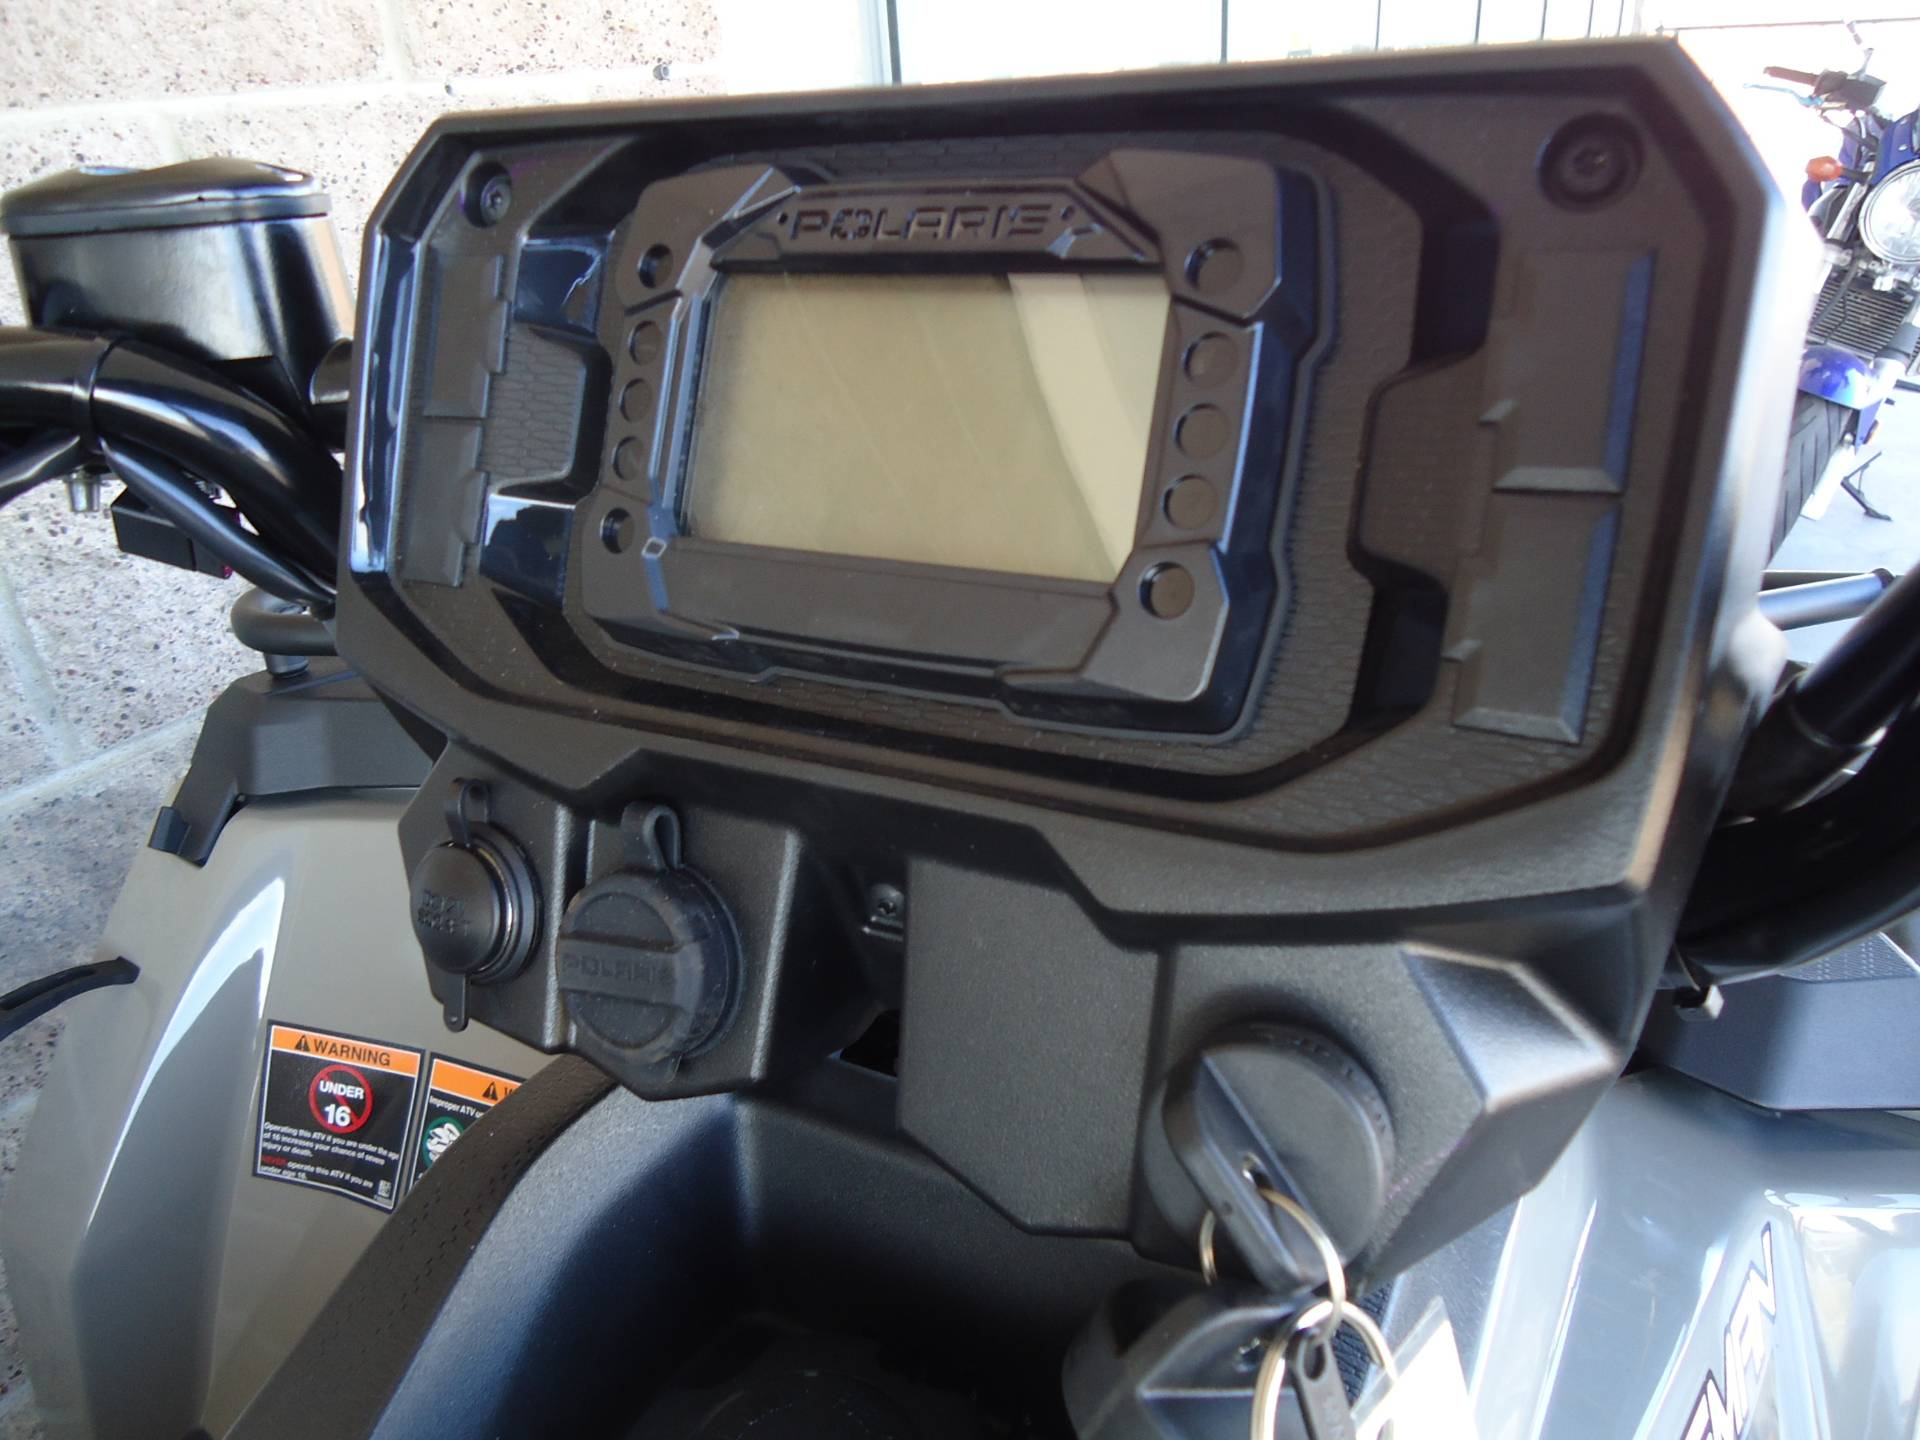 2021 Polaris Sportsman 570 in Denver, Colorado - Photo 12